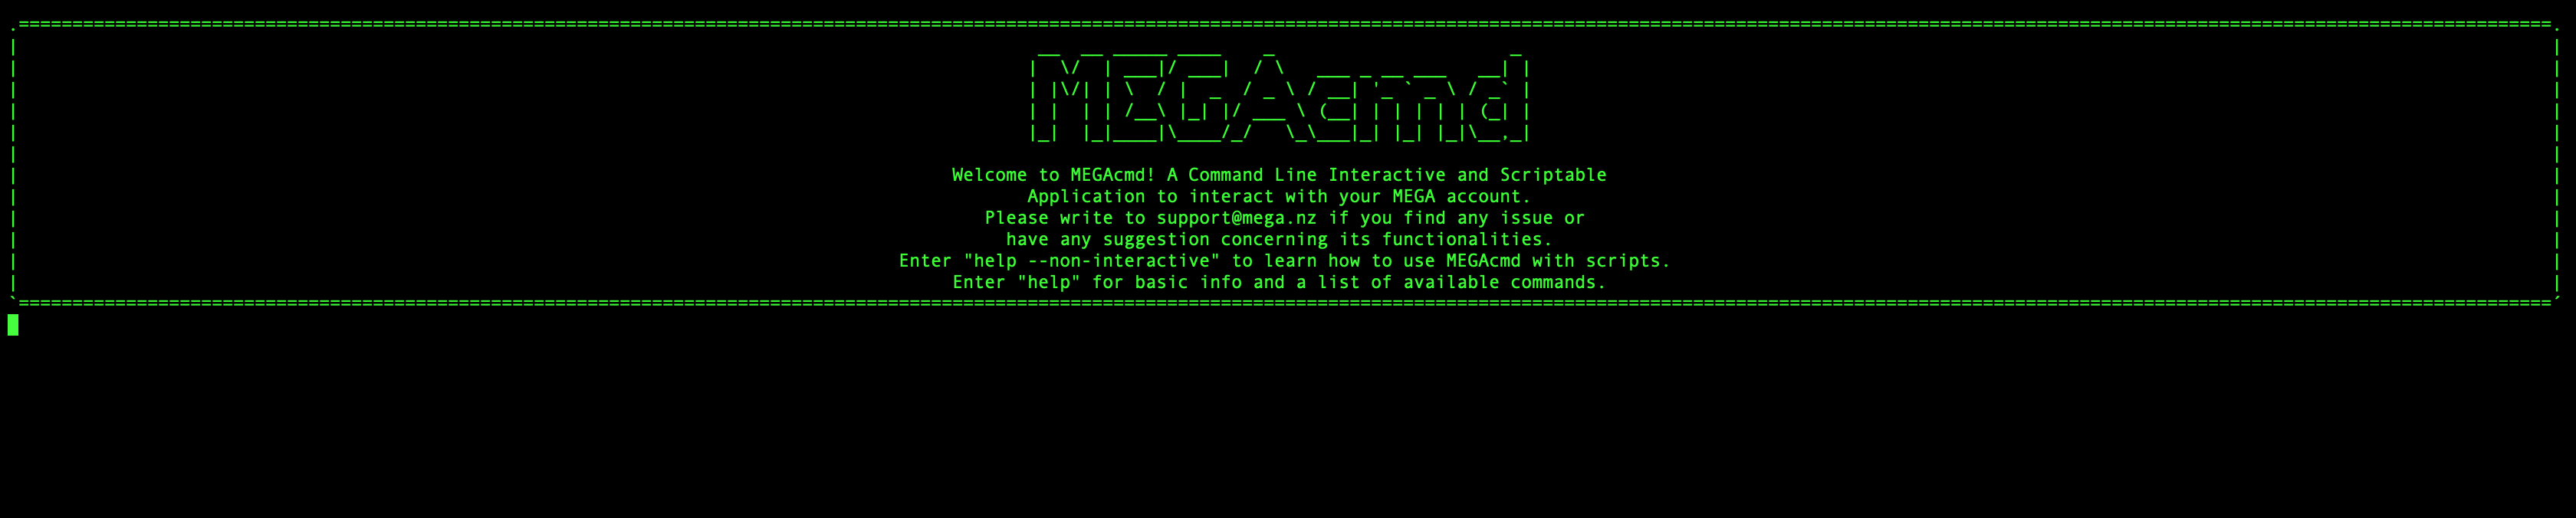 mega-cmd stop working periodically · Issue #122 · meganz